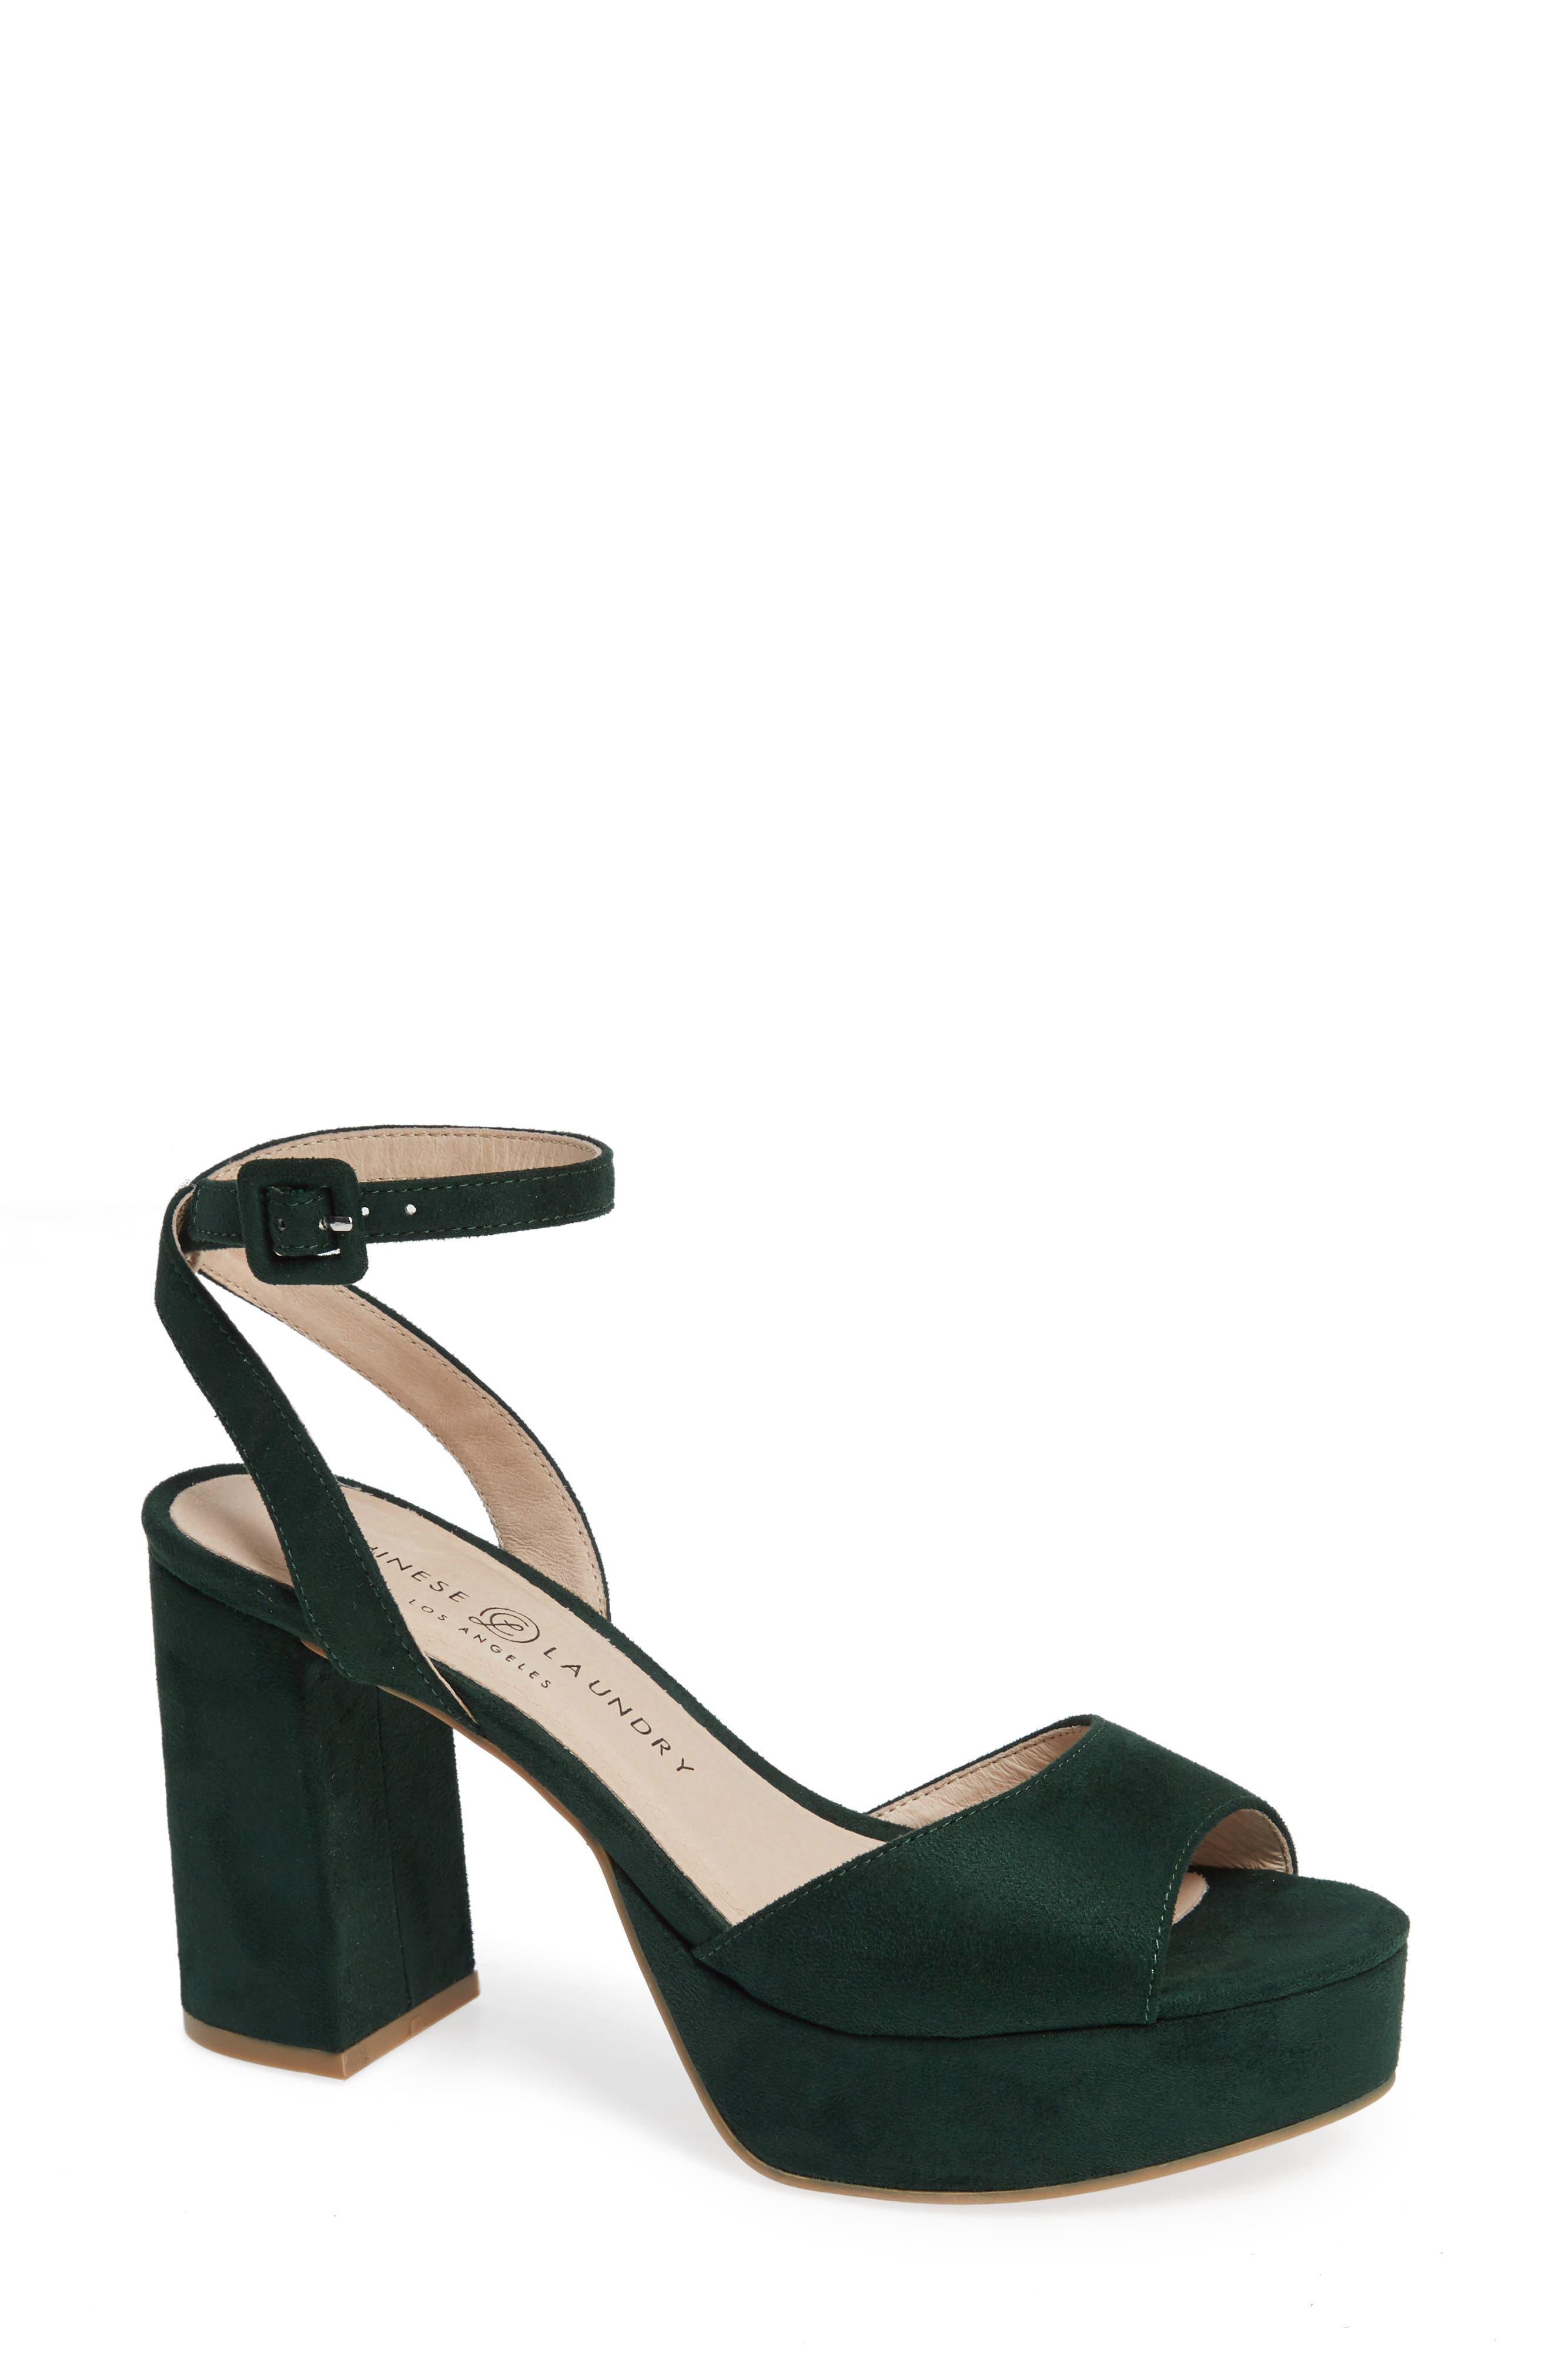 CHINESE LAUNDRY Theresa Platform Sandal, Main, color, FOREST GREEN SUEDE